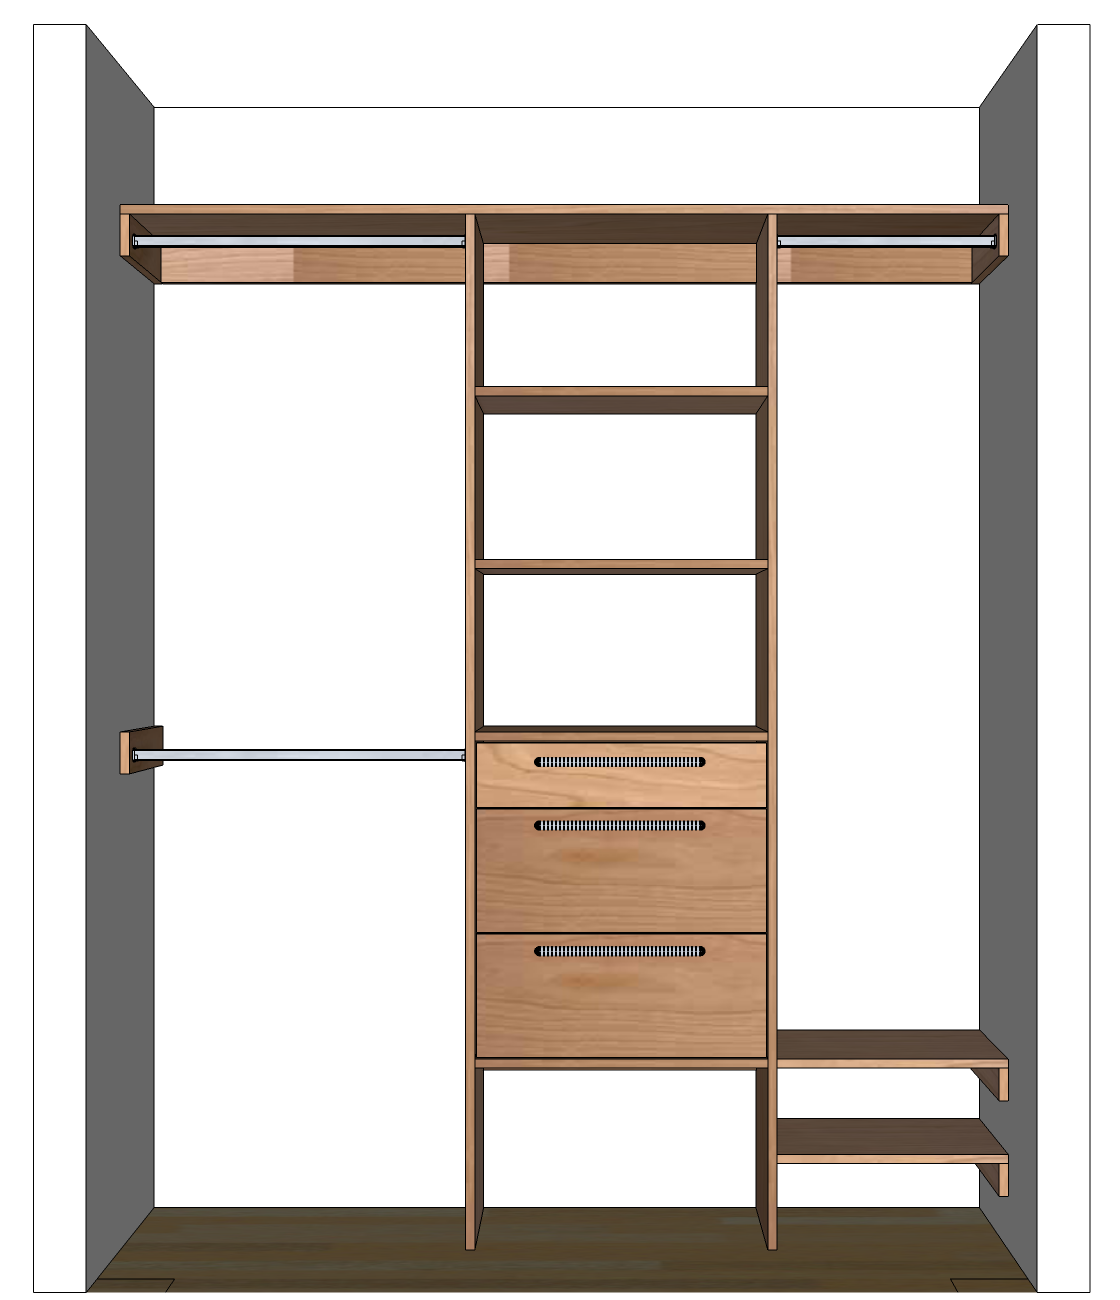 tom builds stuff diy closet organizer plans for 5 to 8 closet